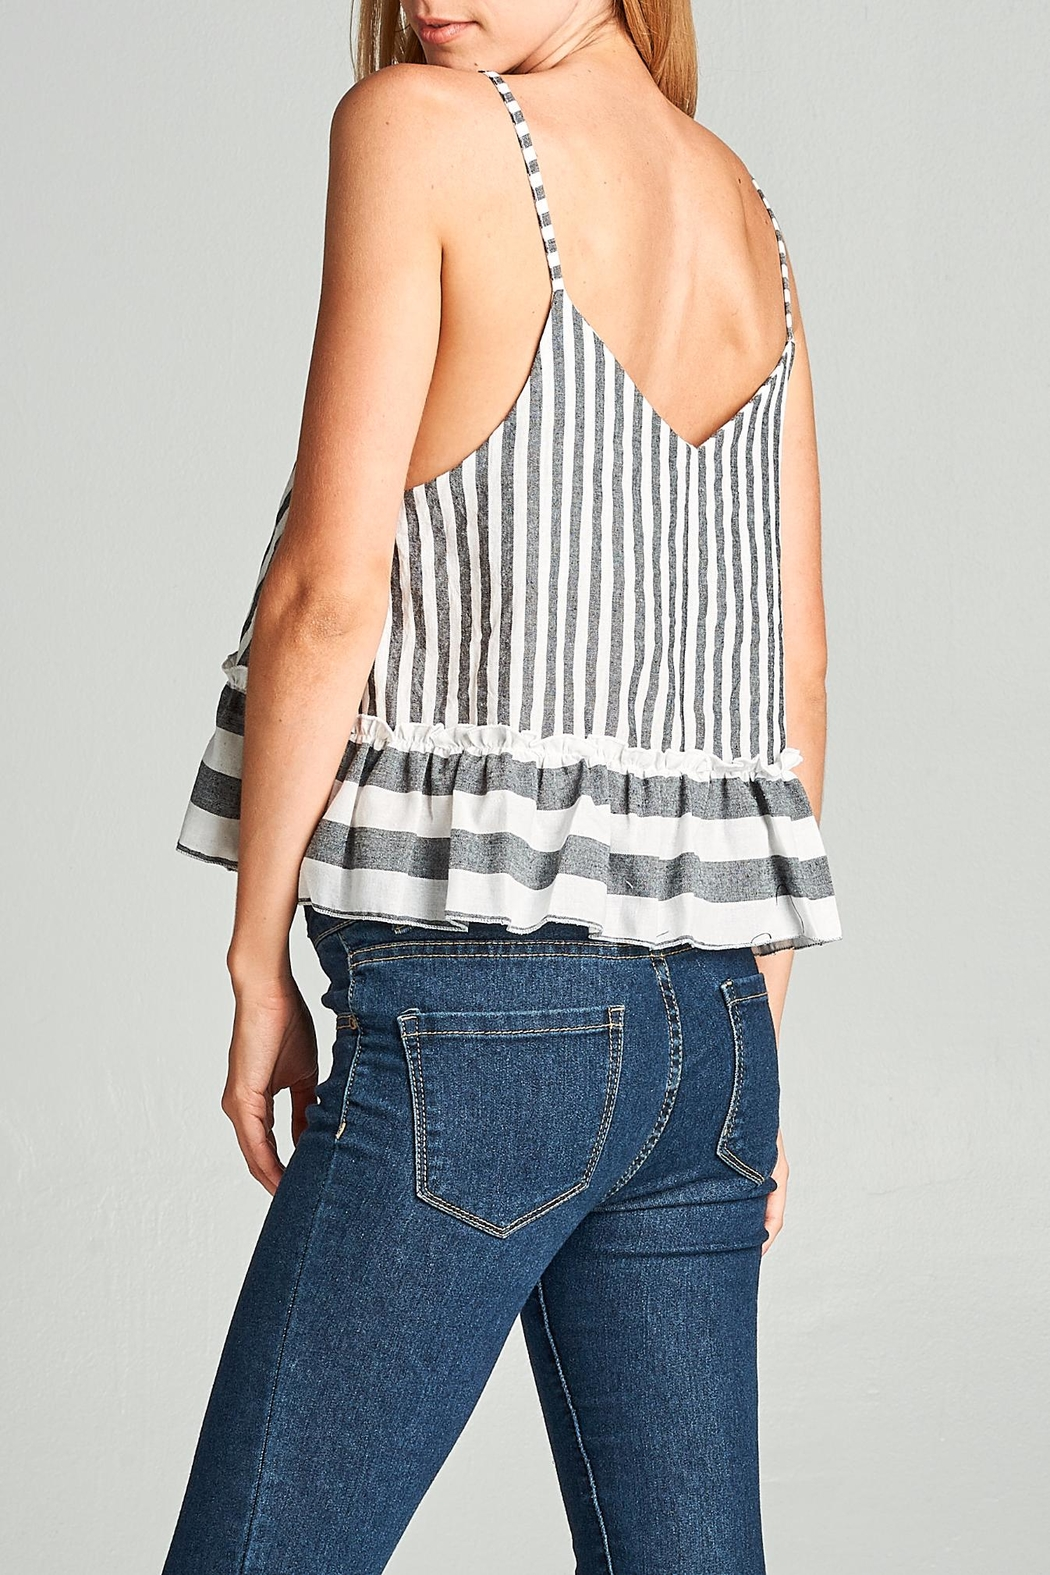 Racine Striped Crop Top - Side Cropped Image